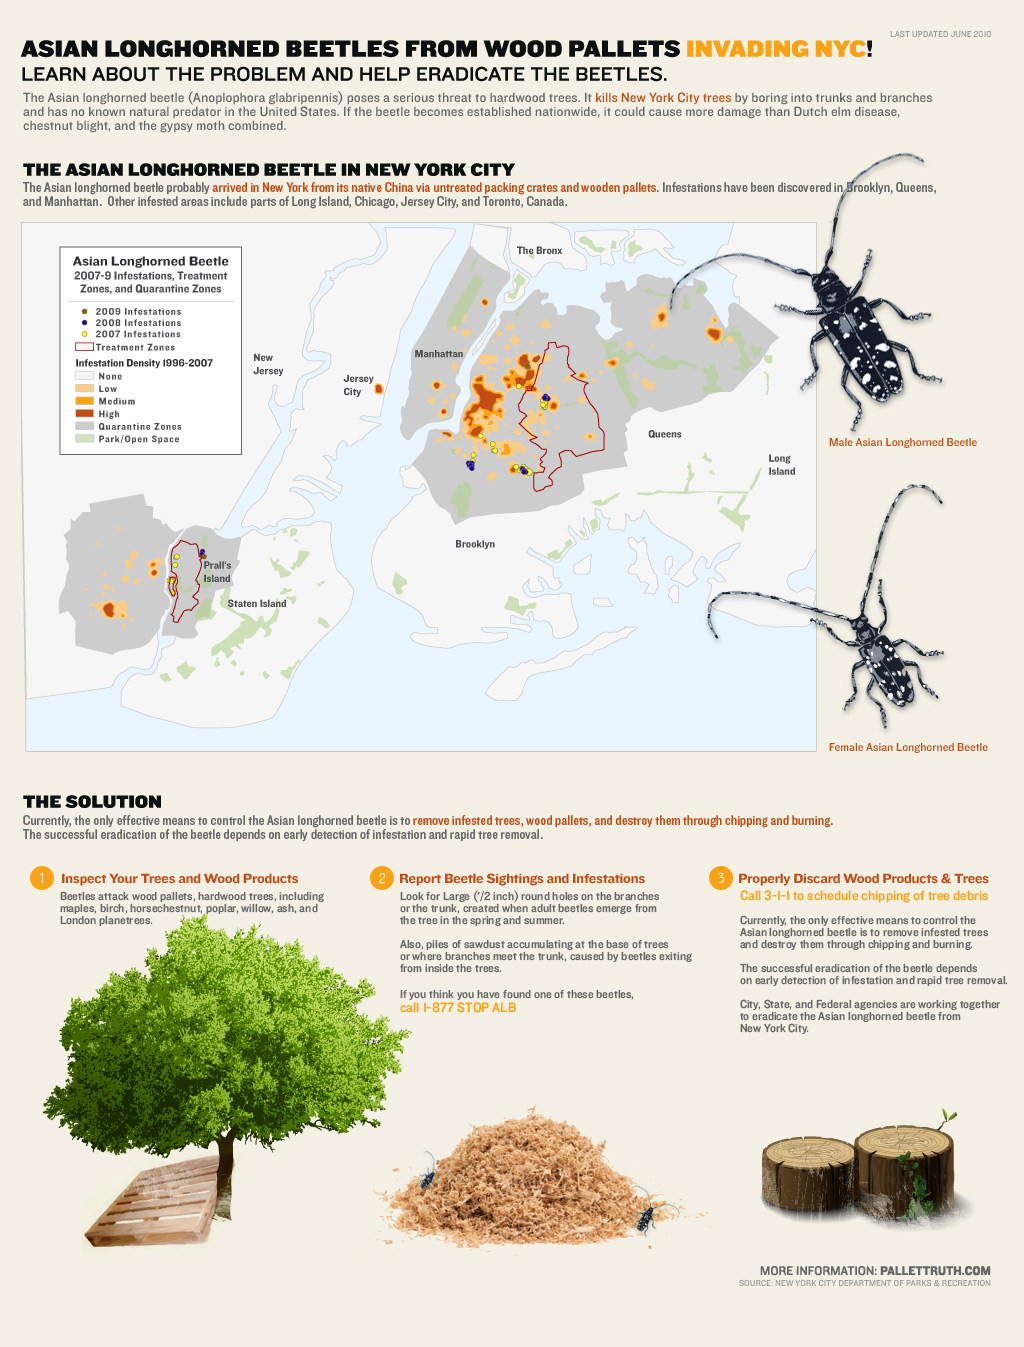 Asian Longhorned Beetles from Chinese Wood Pallets Invading New York City! [Infographic]